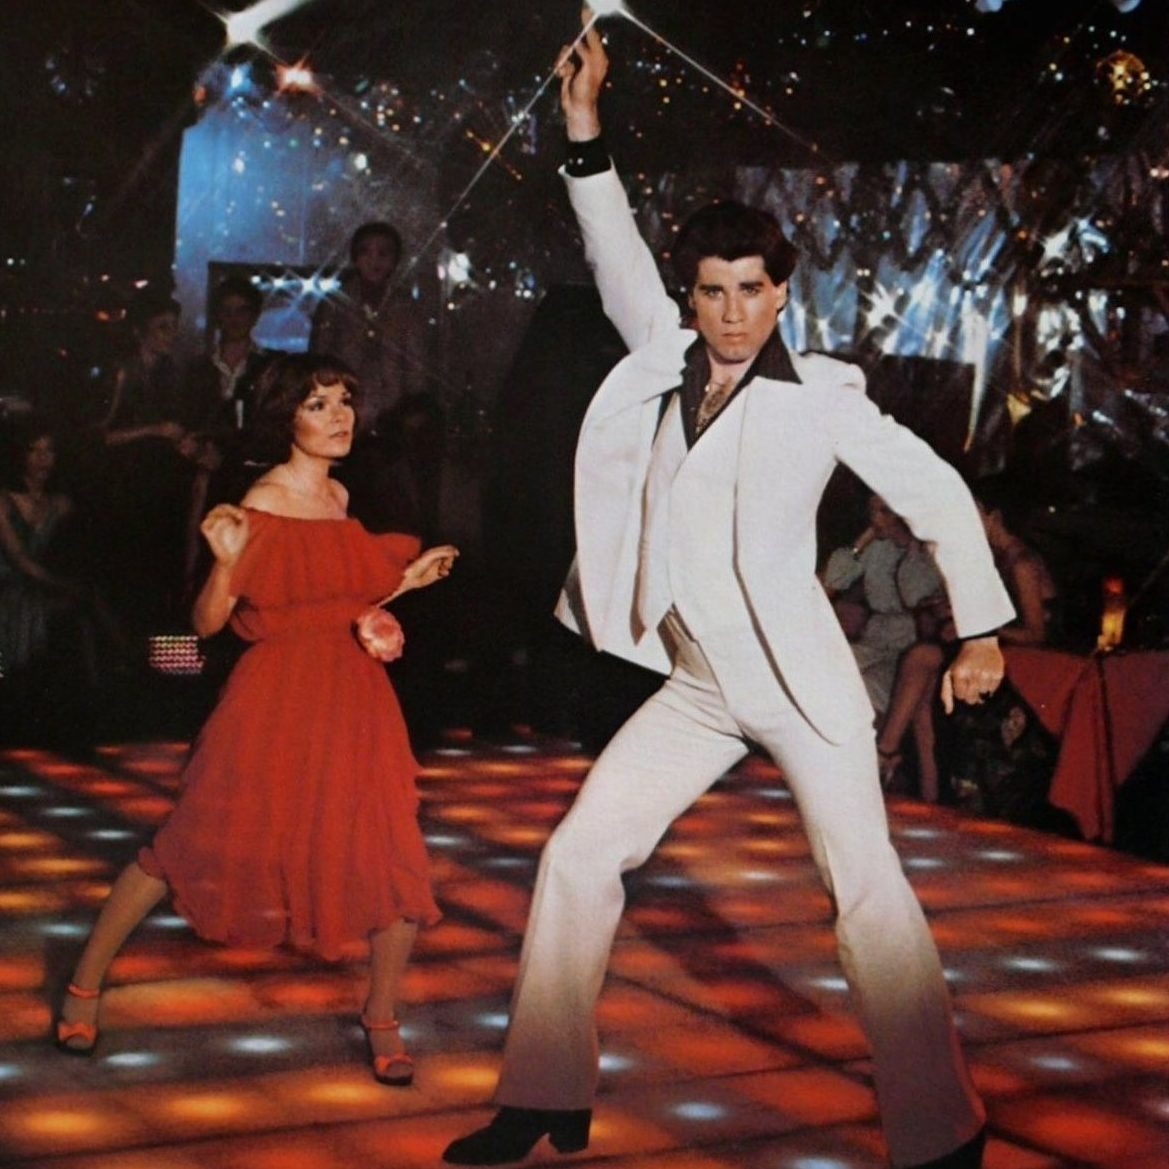 saturday night fever poster e1598970847759 20 High-Flying Facts About 1983 Action Thriller Blue Thunder